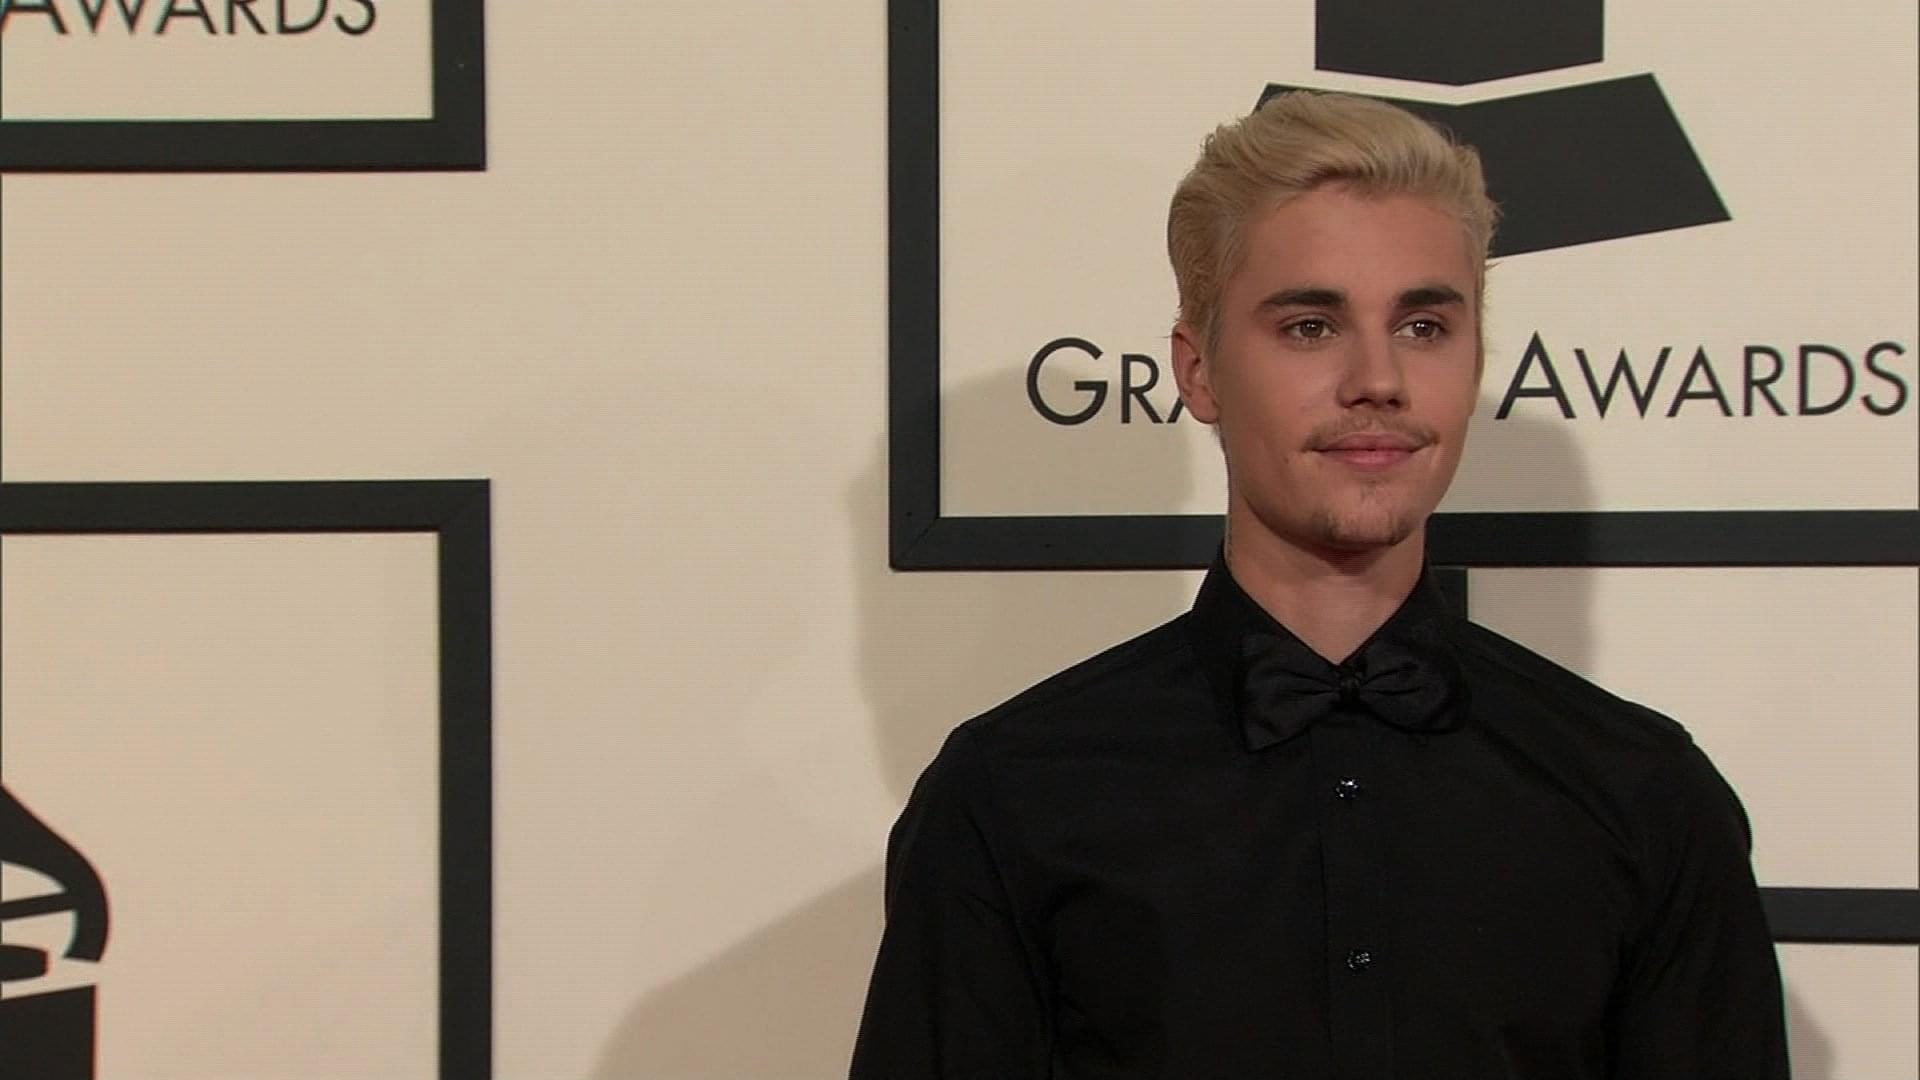 Props To Justin Bieber Being A Traditional Gentlemen!